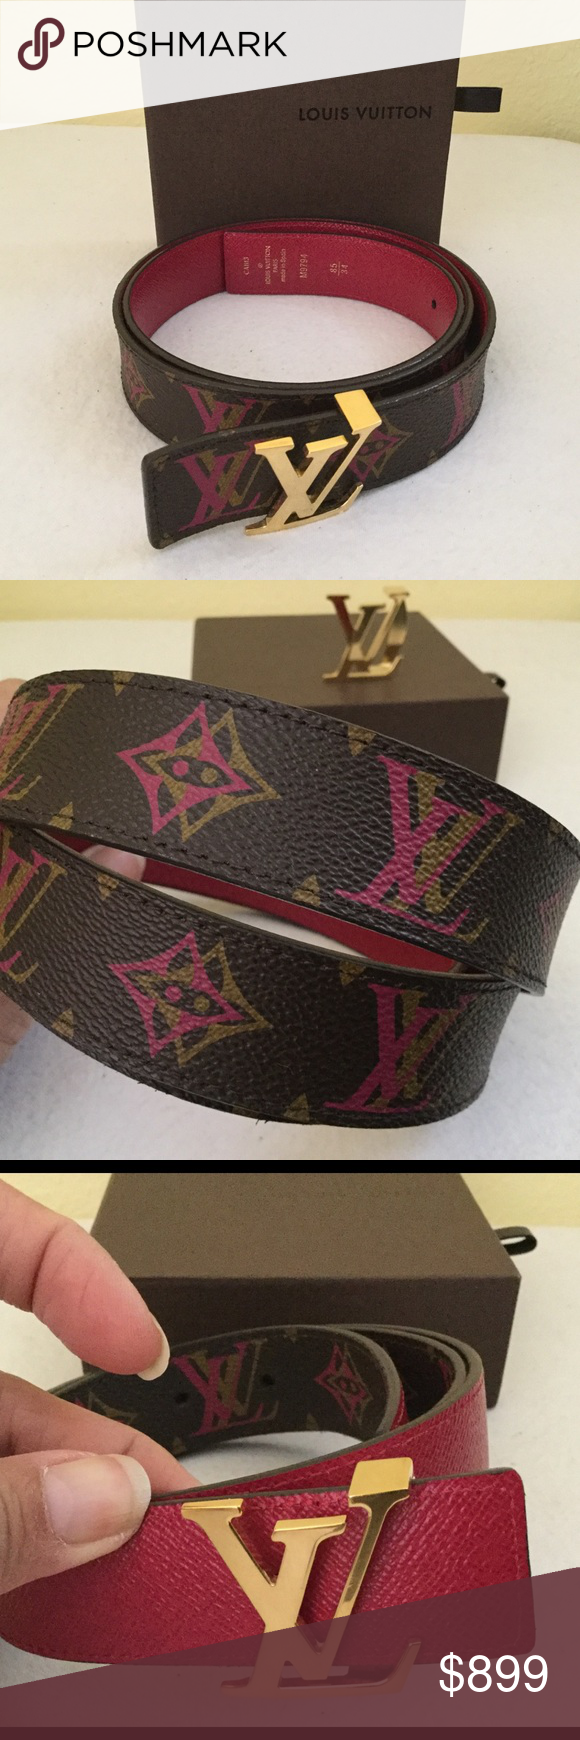 12c407c468cb Rare Louis Vuitton Initial Reversible Hipster Belt . Louis Vuitton  Accessories Belts